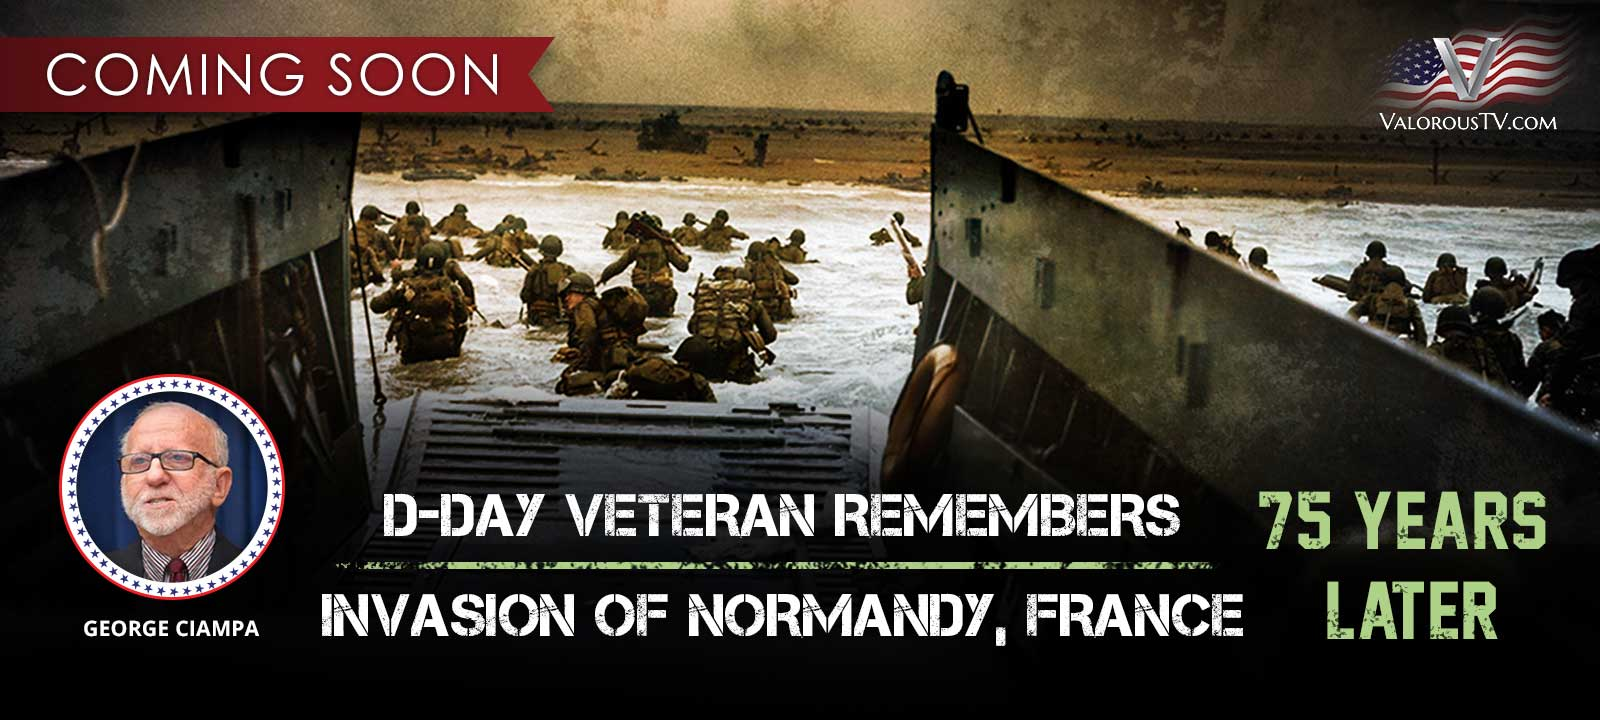 D-DAY VETERAN REMEMBERS INVASION OF NORMANDY 75 YEARS LATER